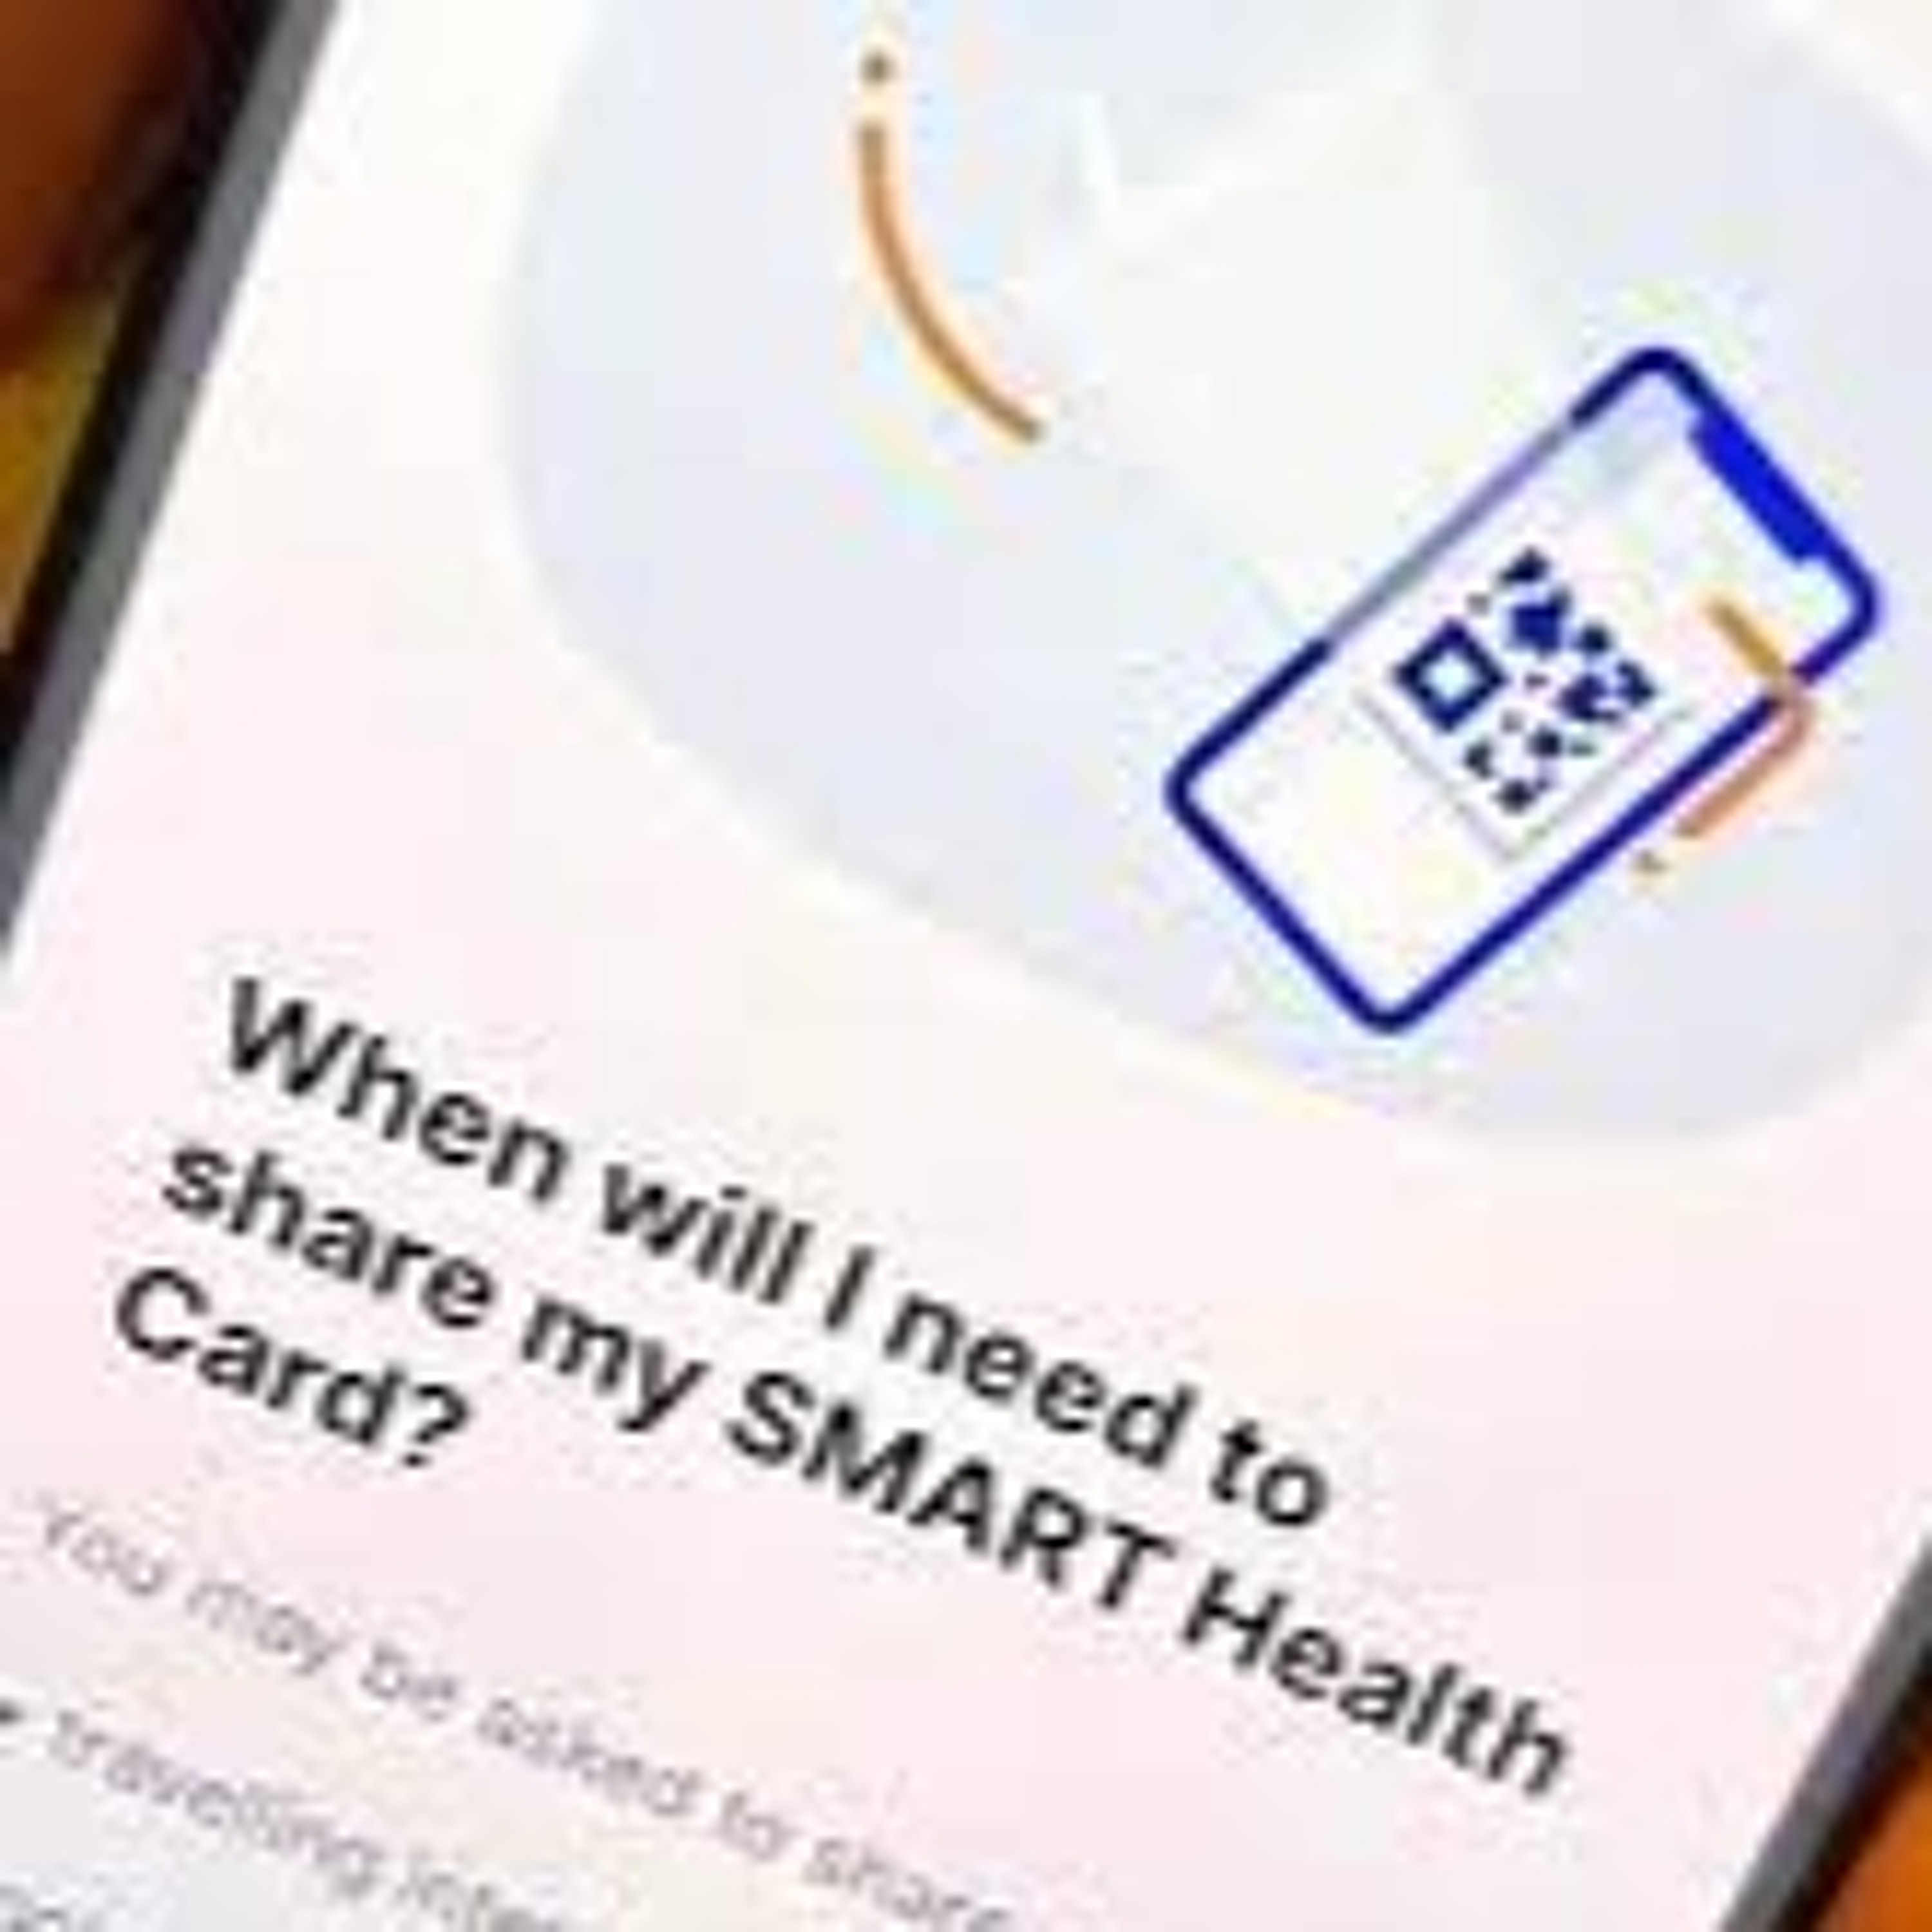 Samsung Pay Wallet Now Stores Your Digital COVID-19 Vaccine Card (23.08.21)